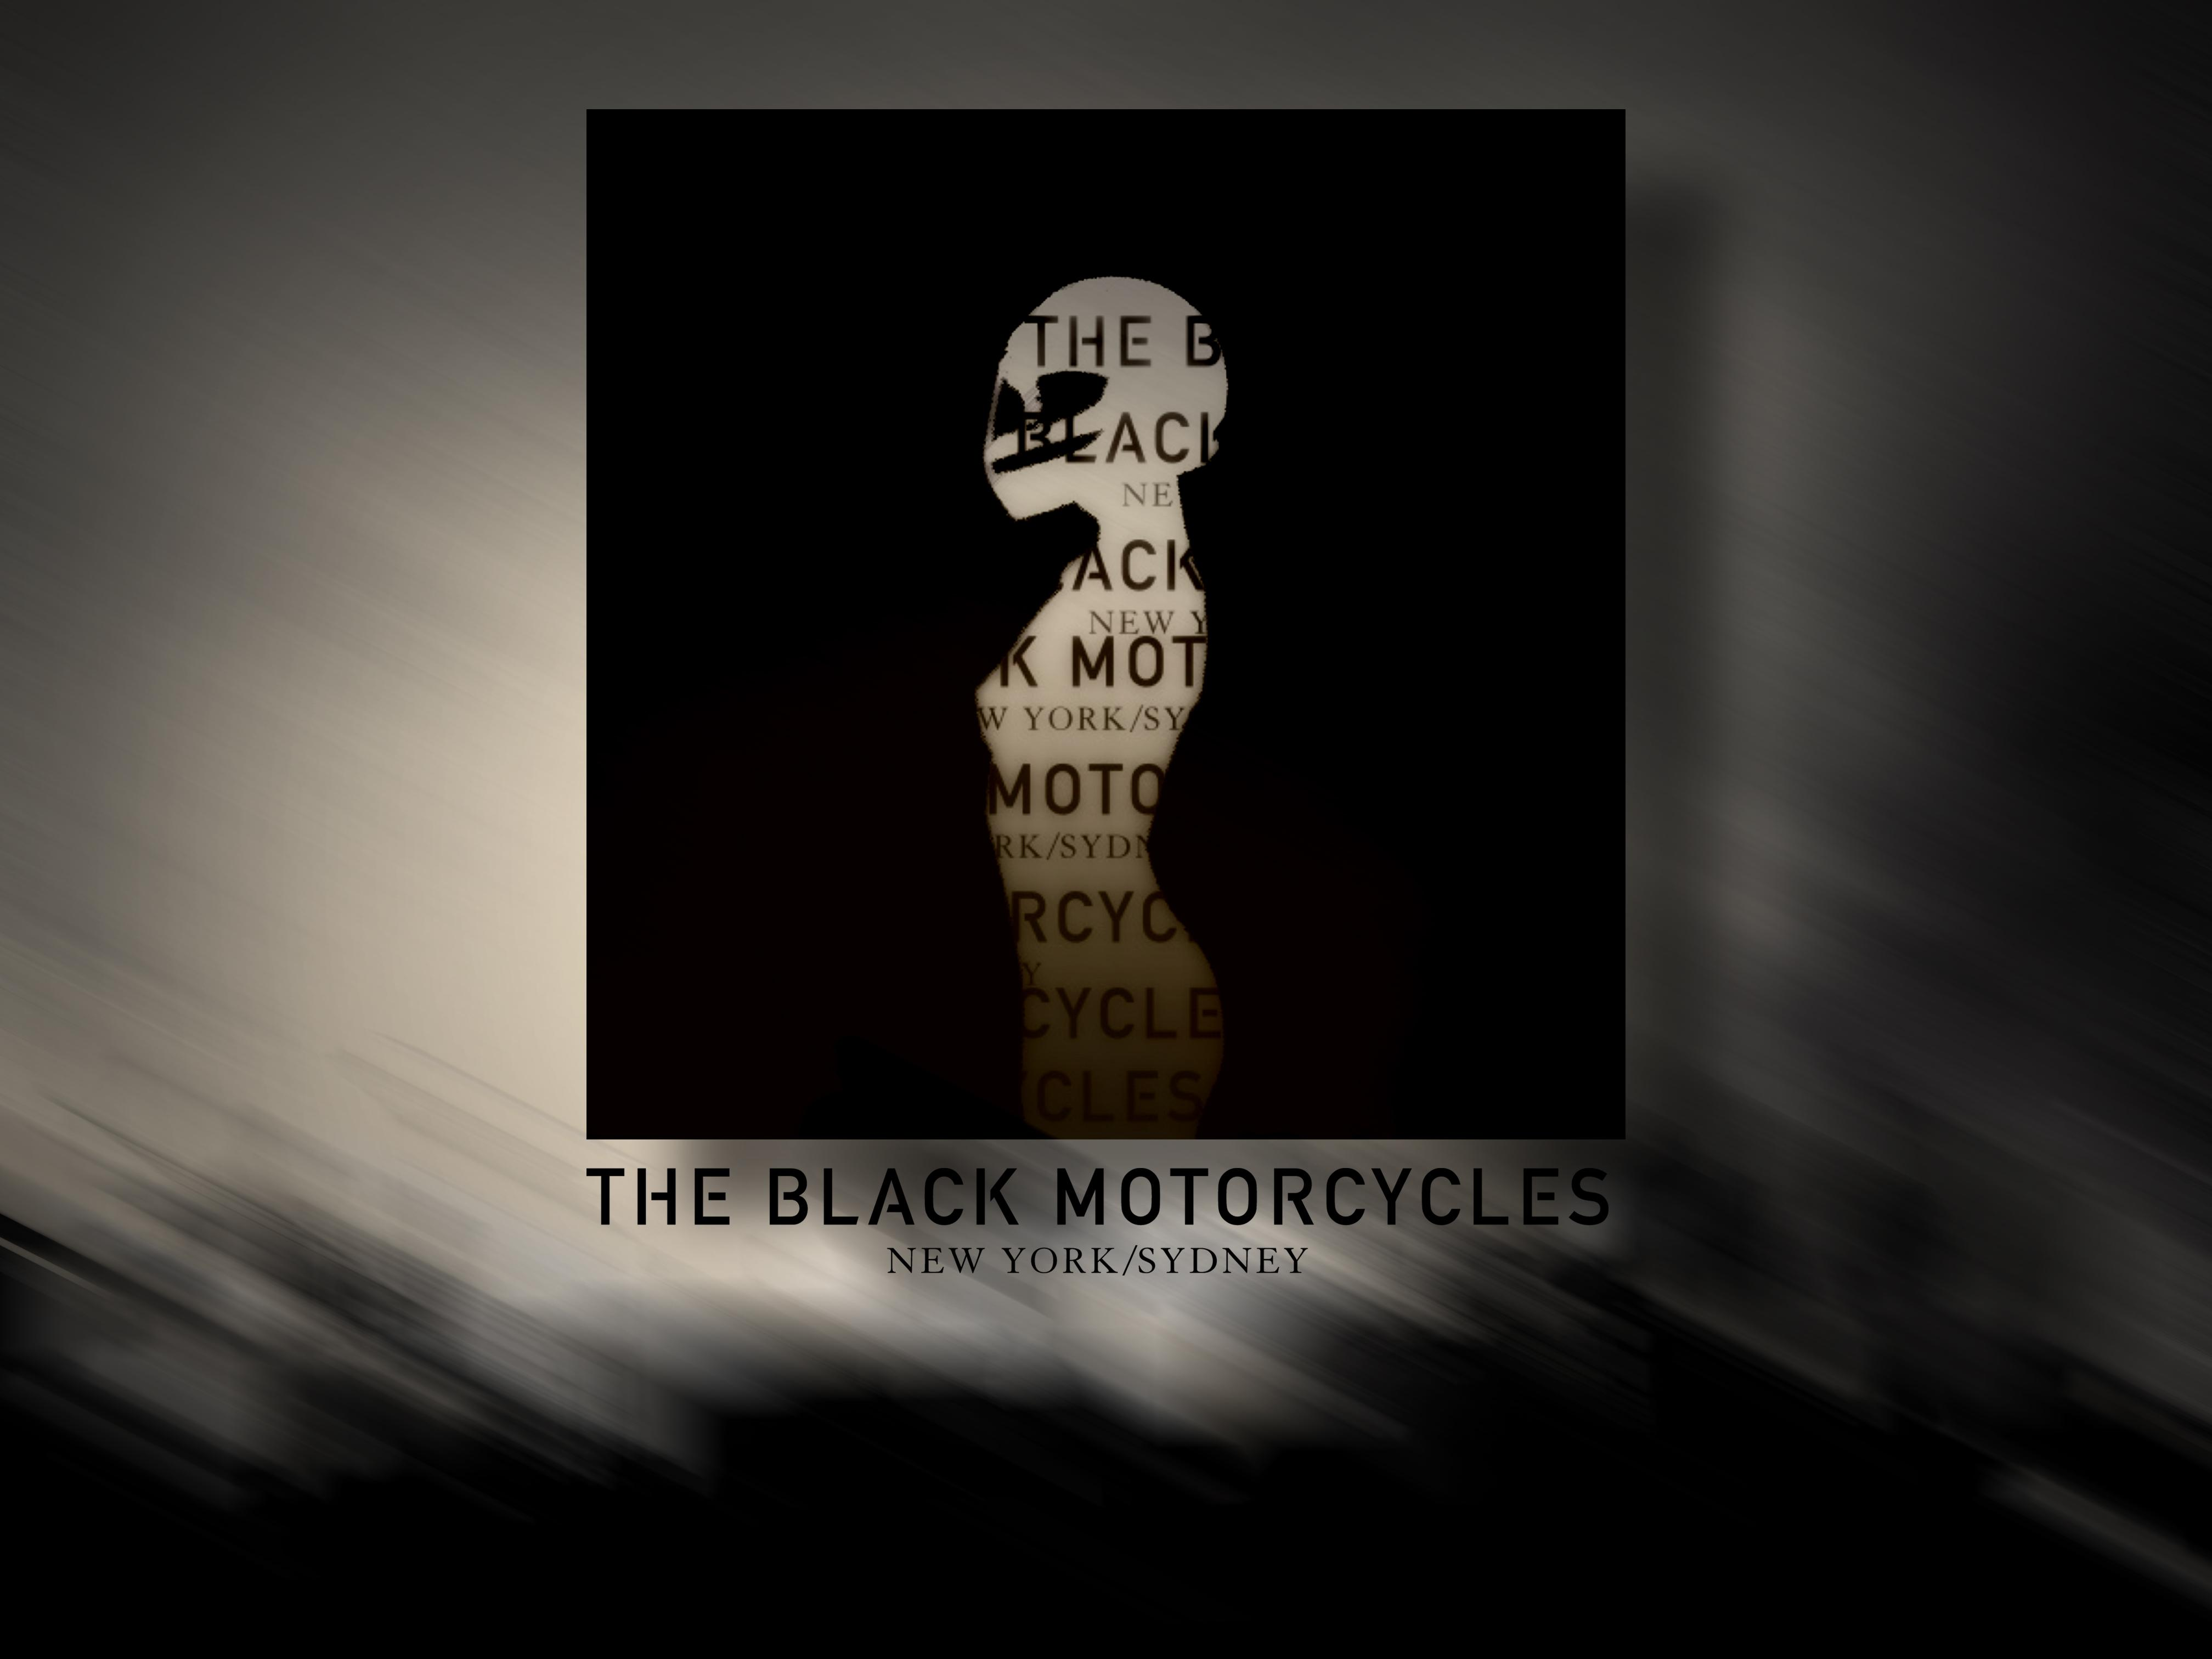 The Black Motorcycles Rock-N-Ride to The Grah